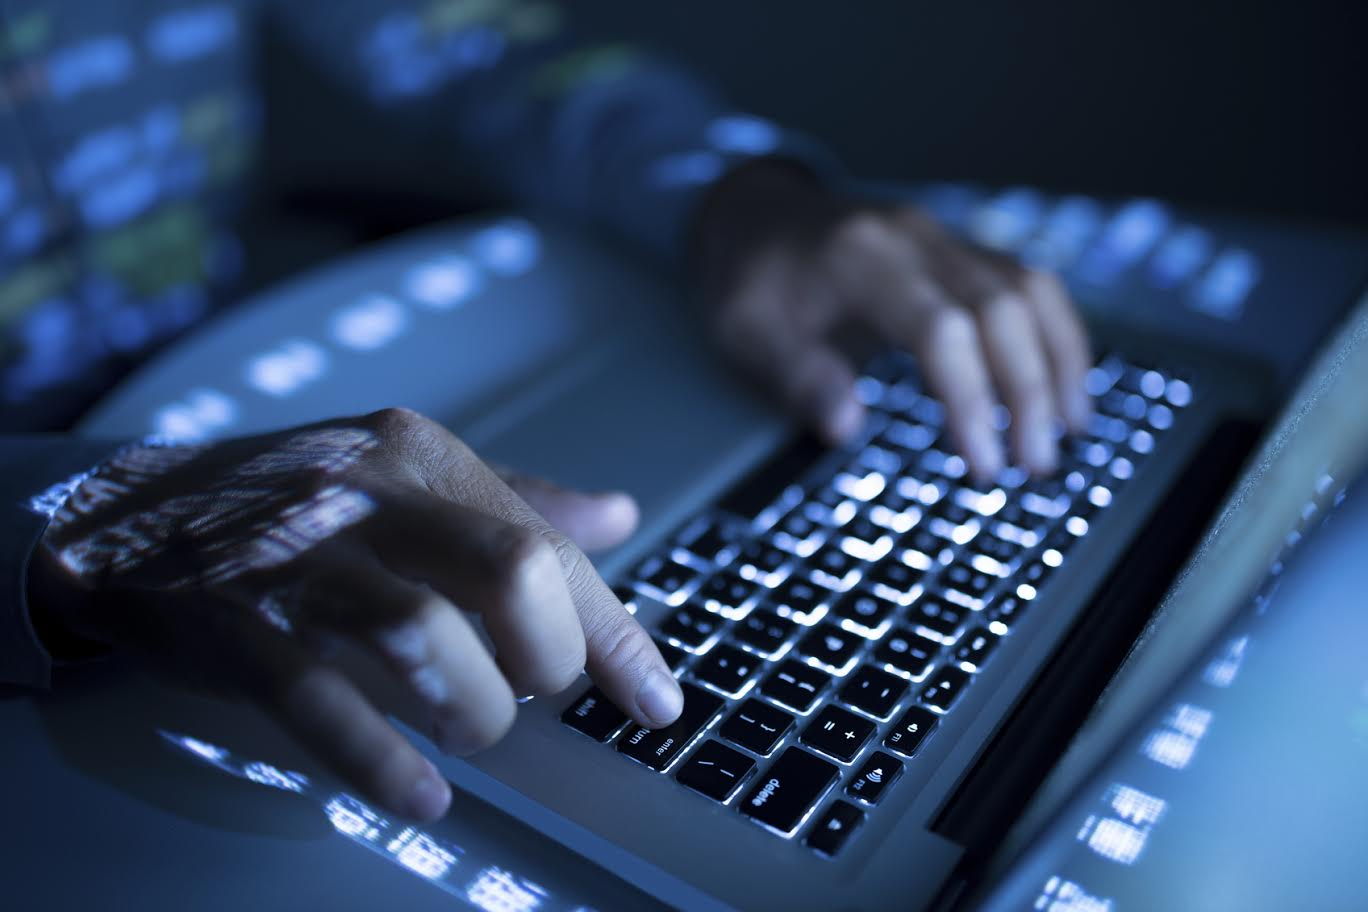 Revenge hacking: This man hacked his firm and sold proprietary data after quitting